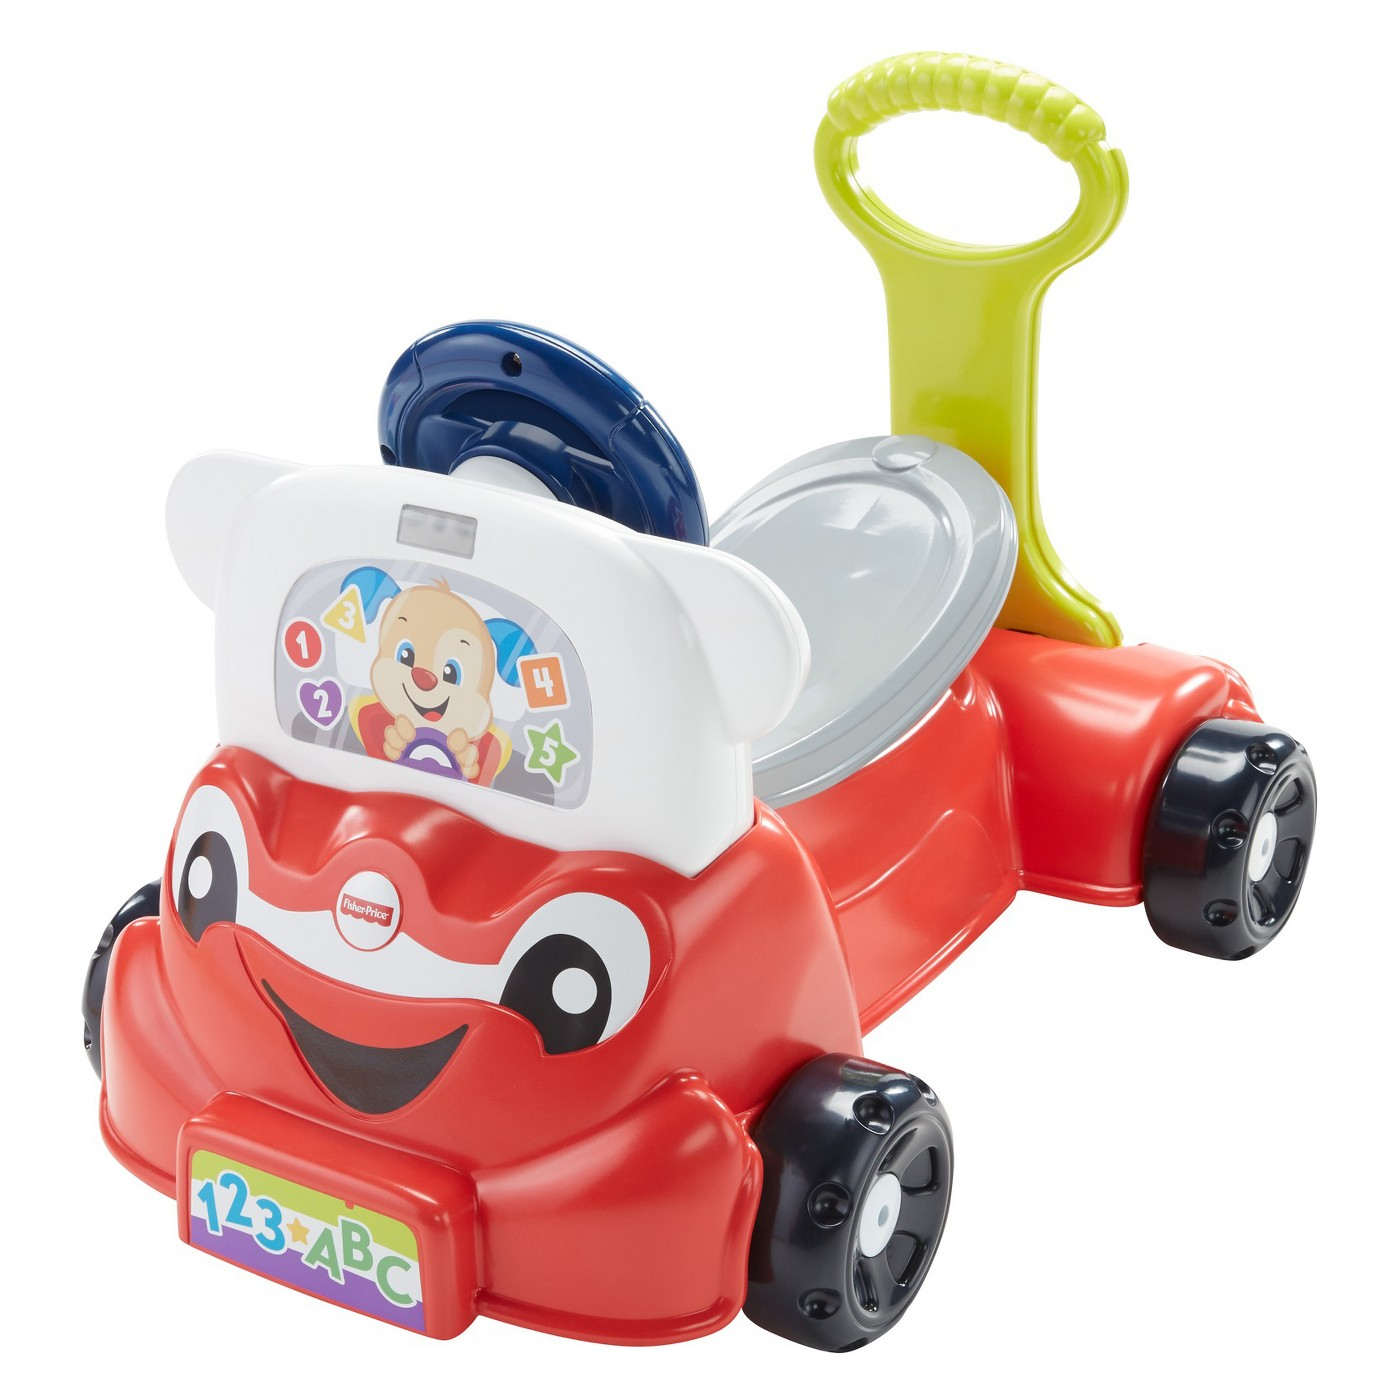 Fisher-Price Laugh and Learn 3-in-1 Smart Car - image 3 of 8